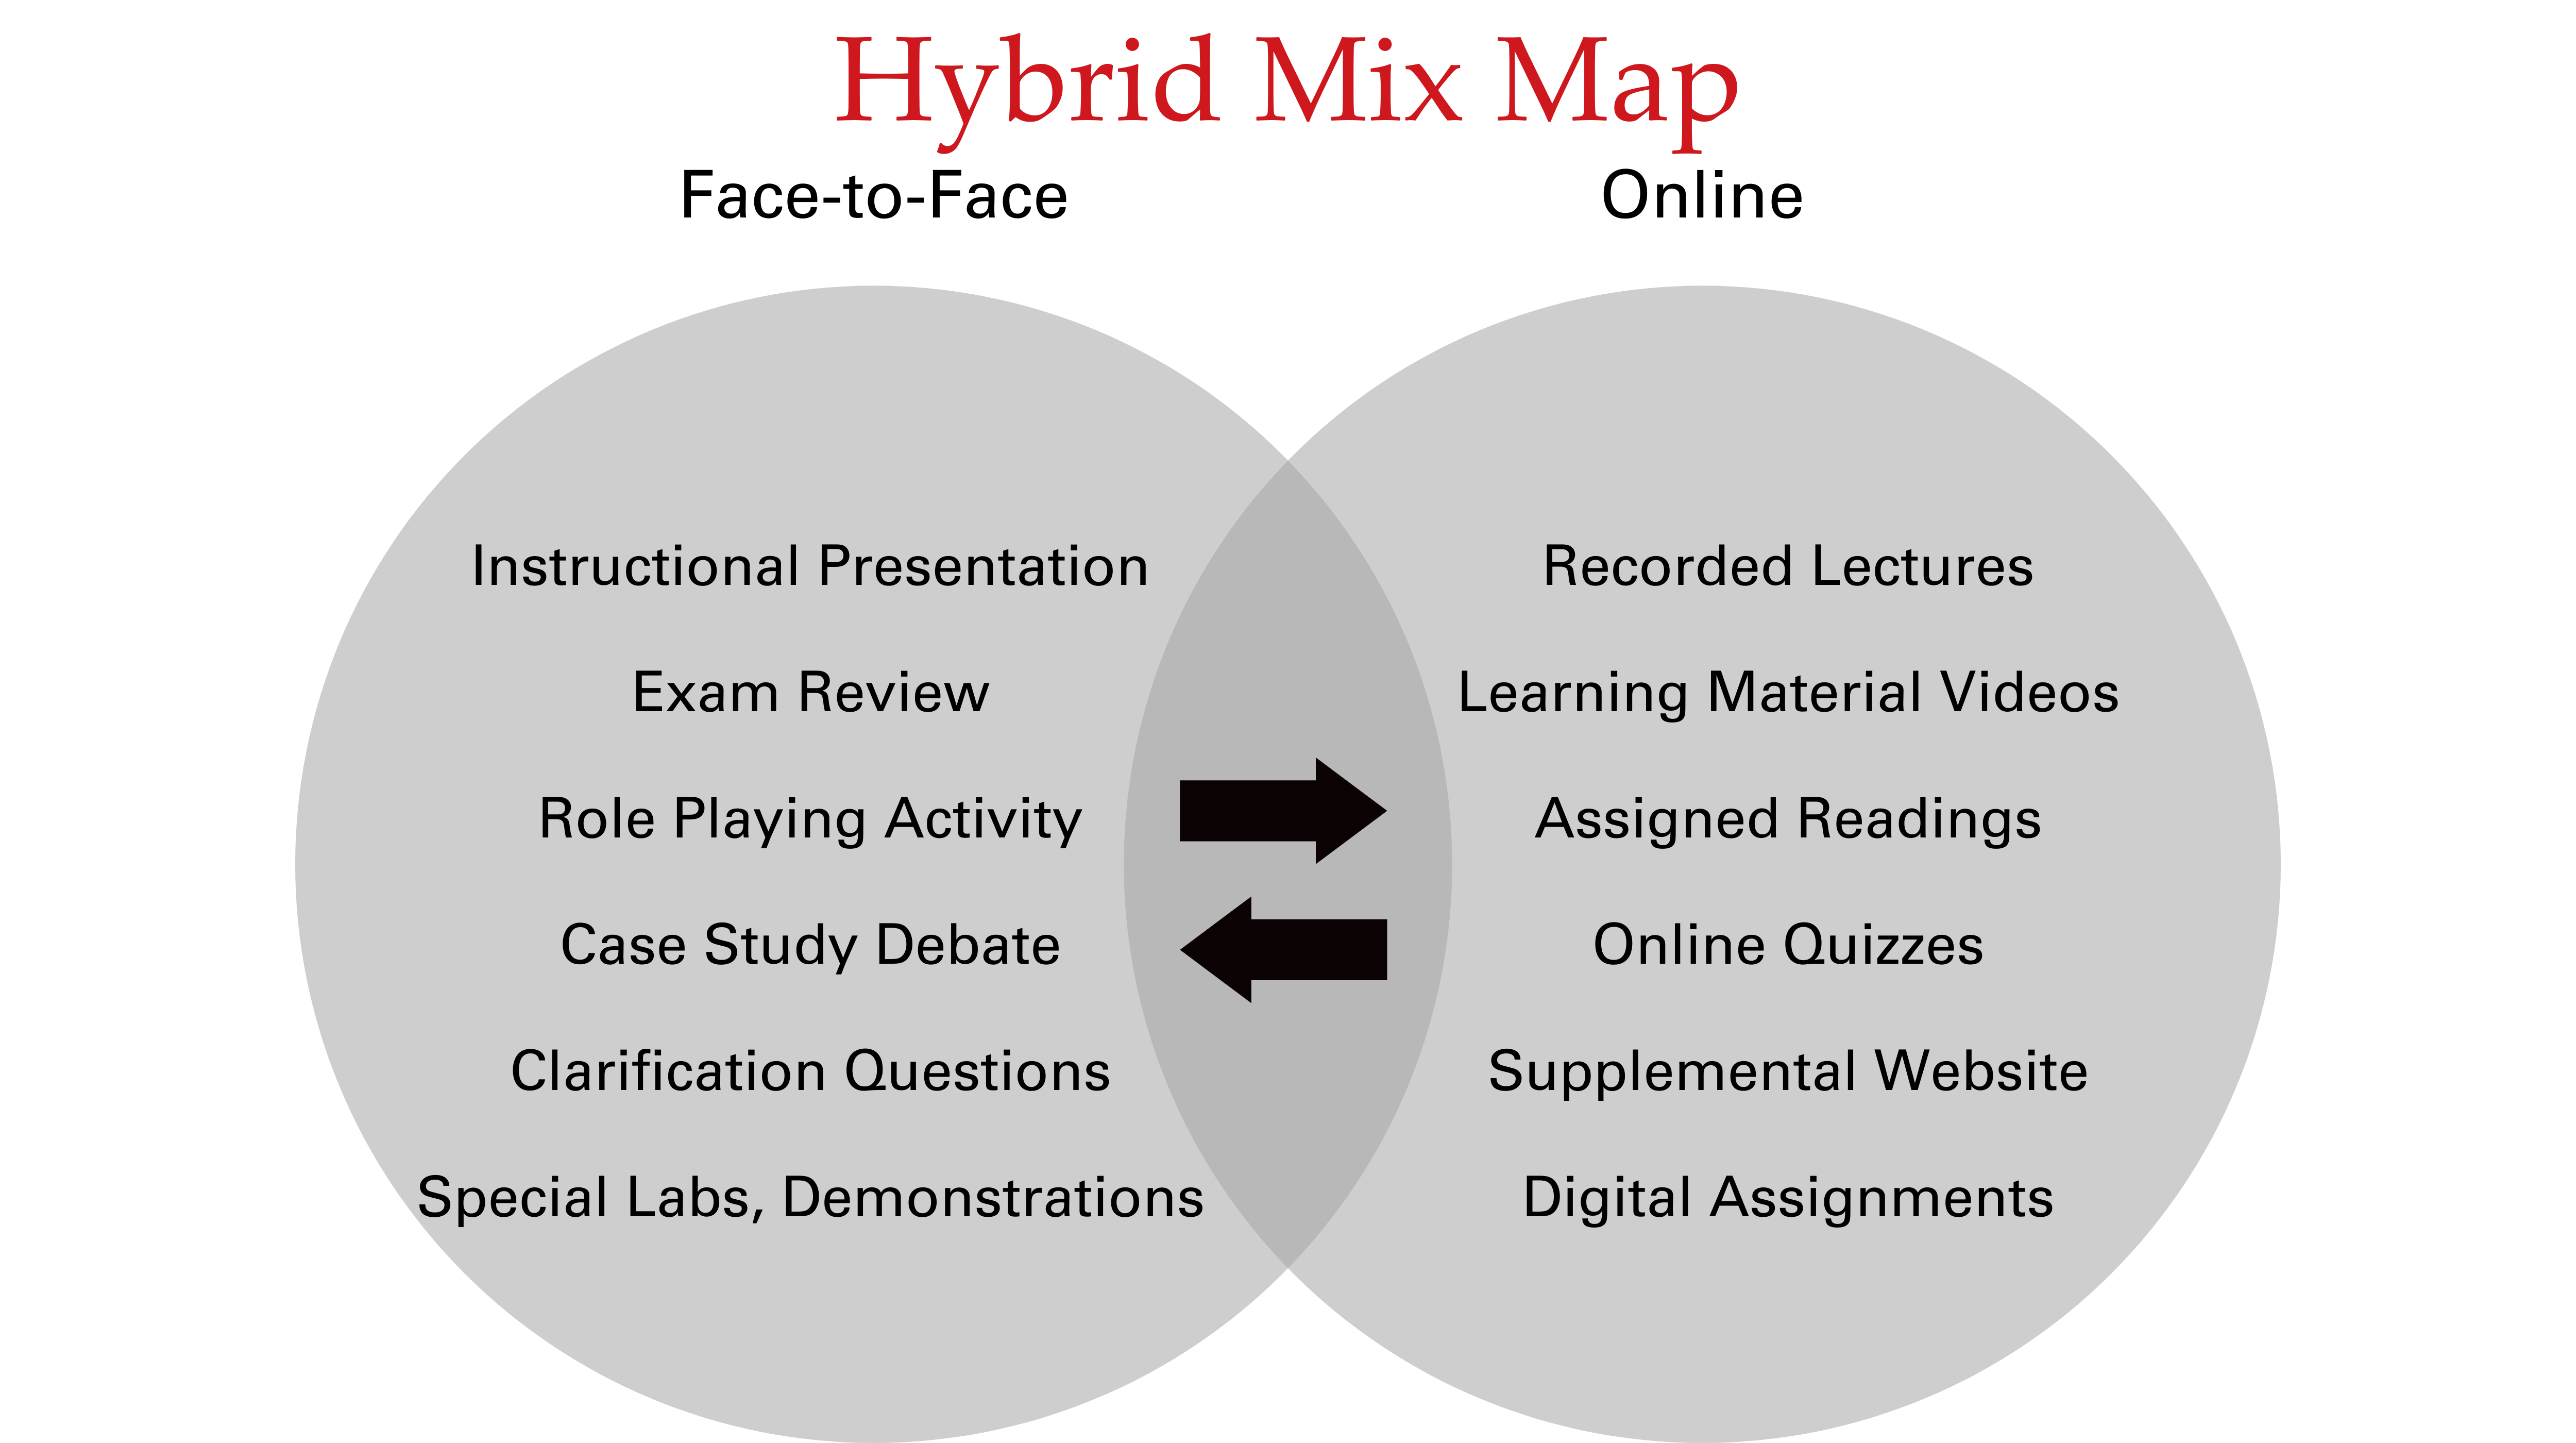 Venn Diagram of Hybrid Learning Overlap Between In-Class and Online Course Components